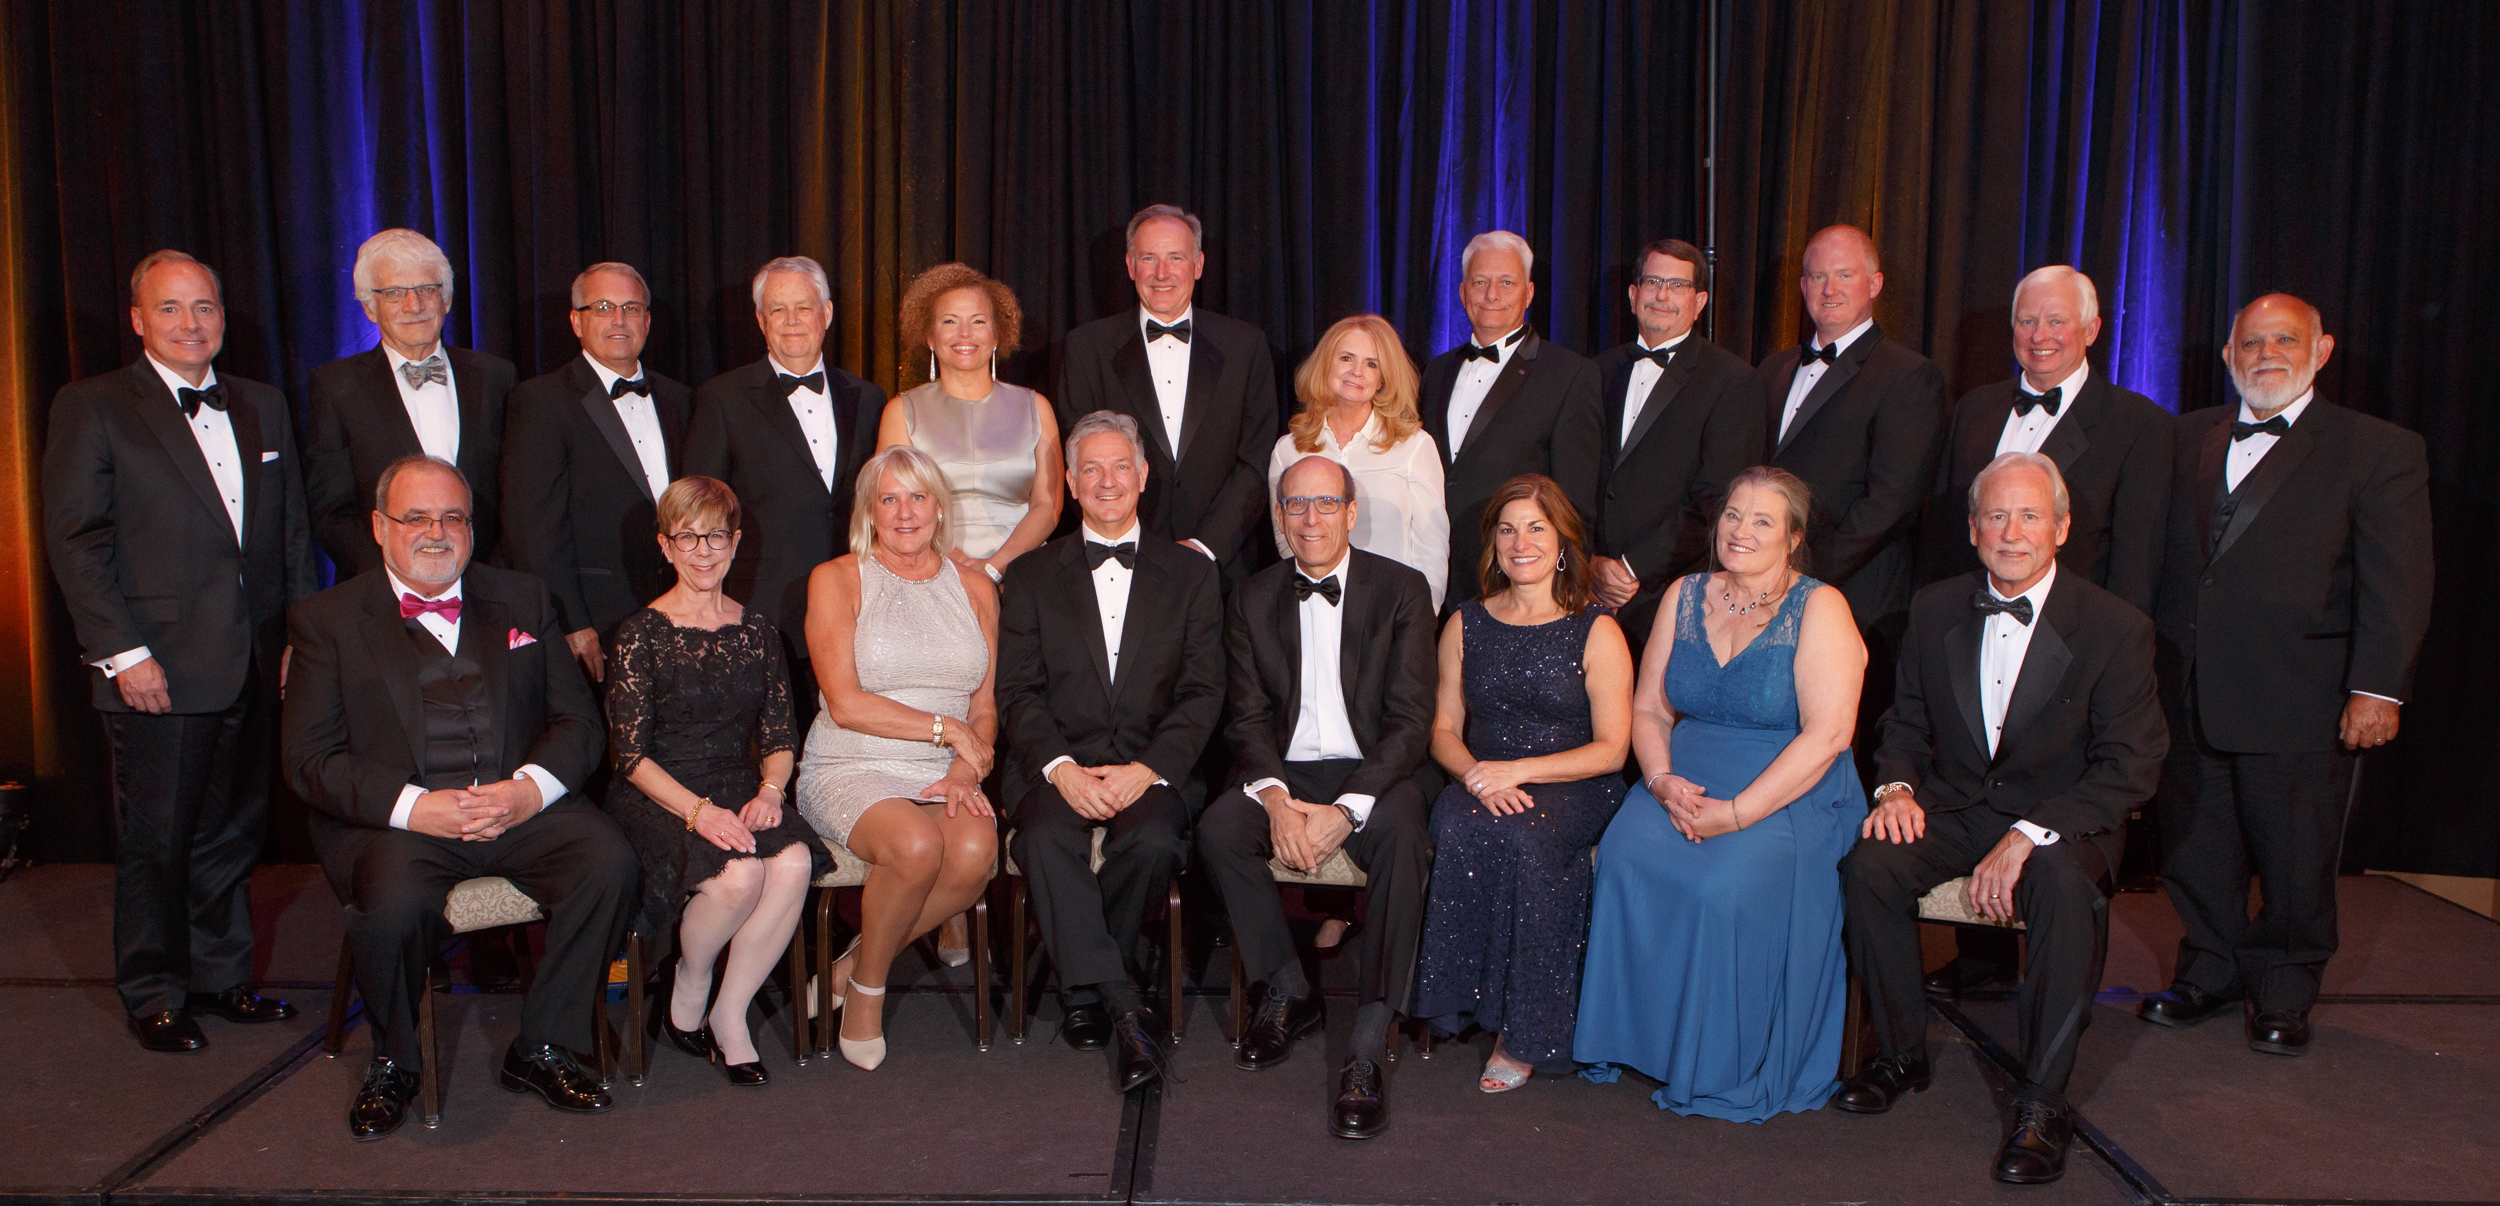 Class of 2017.  The 51st Annual Cable TV Pioneers Banquet, at the Brown Palace Hotel and Spa in Denver, Colorado, on Tuesday, Oct. 17, 2017. Photo Steve Peterson